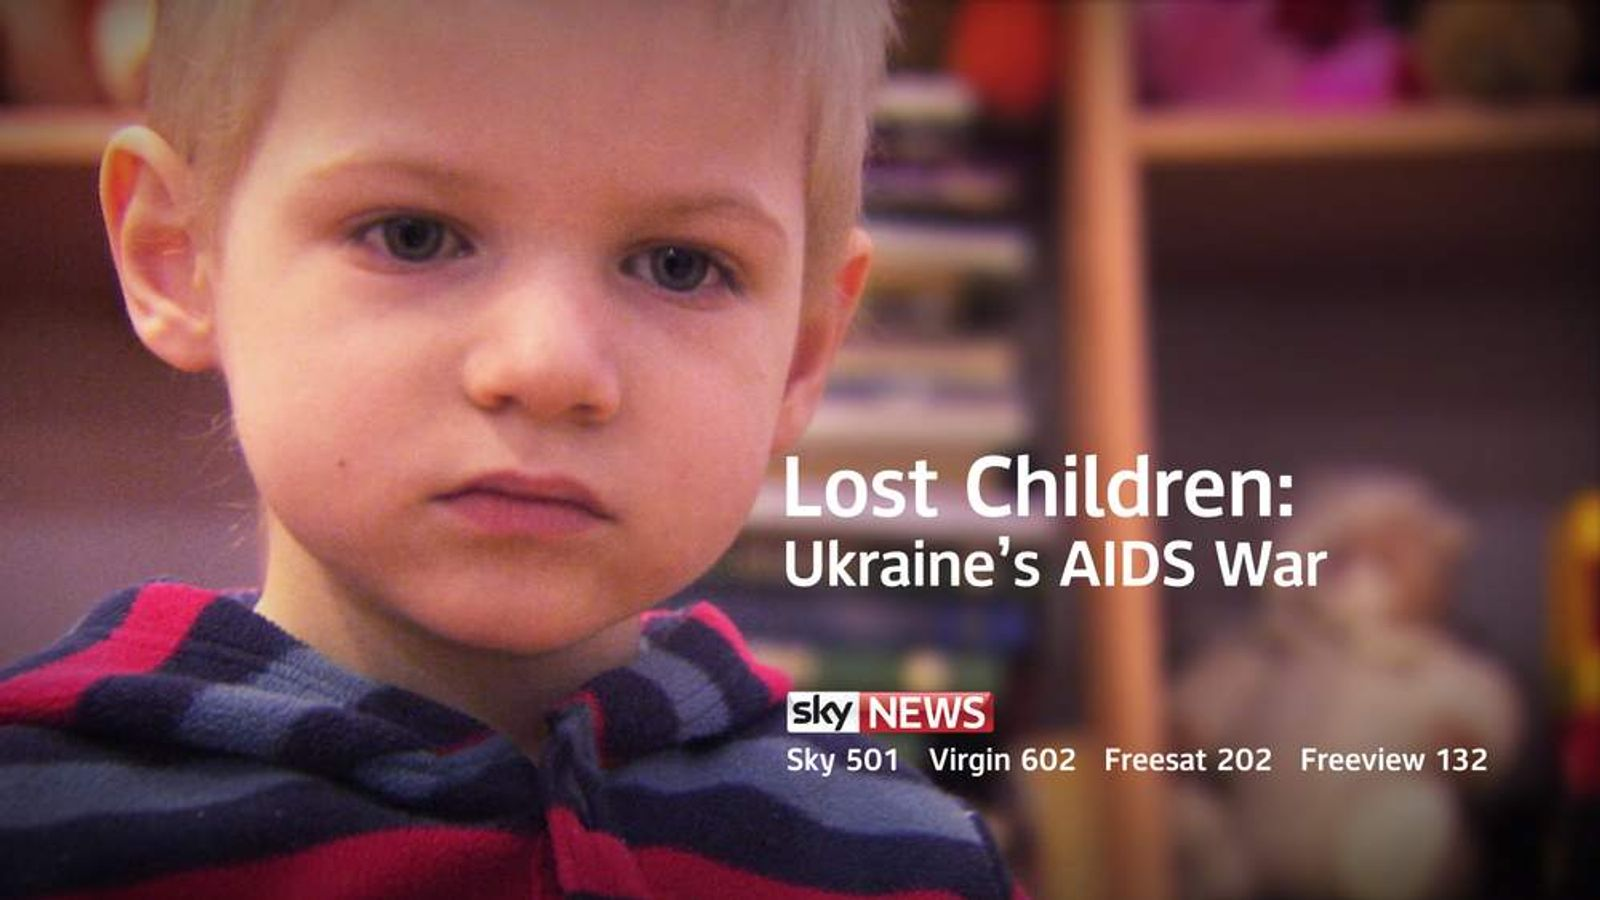 Ukraine's Aids War